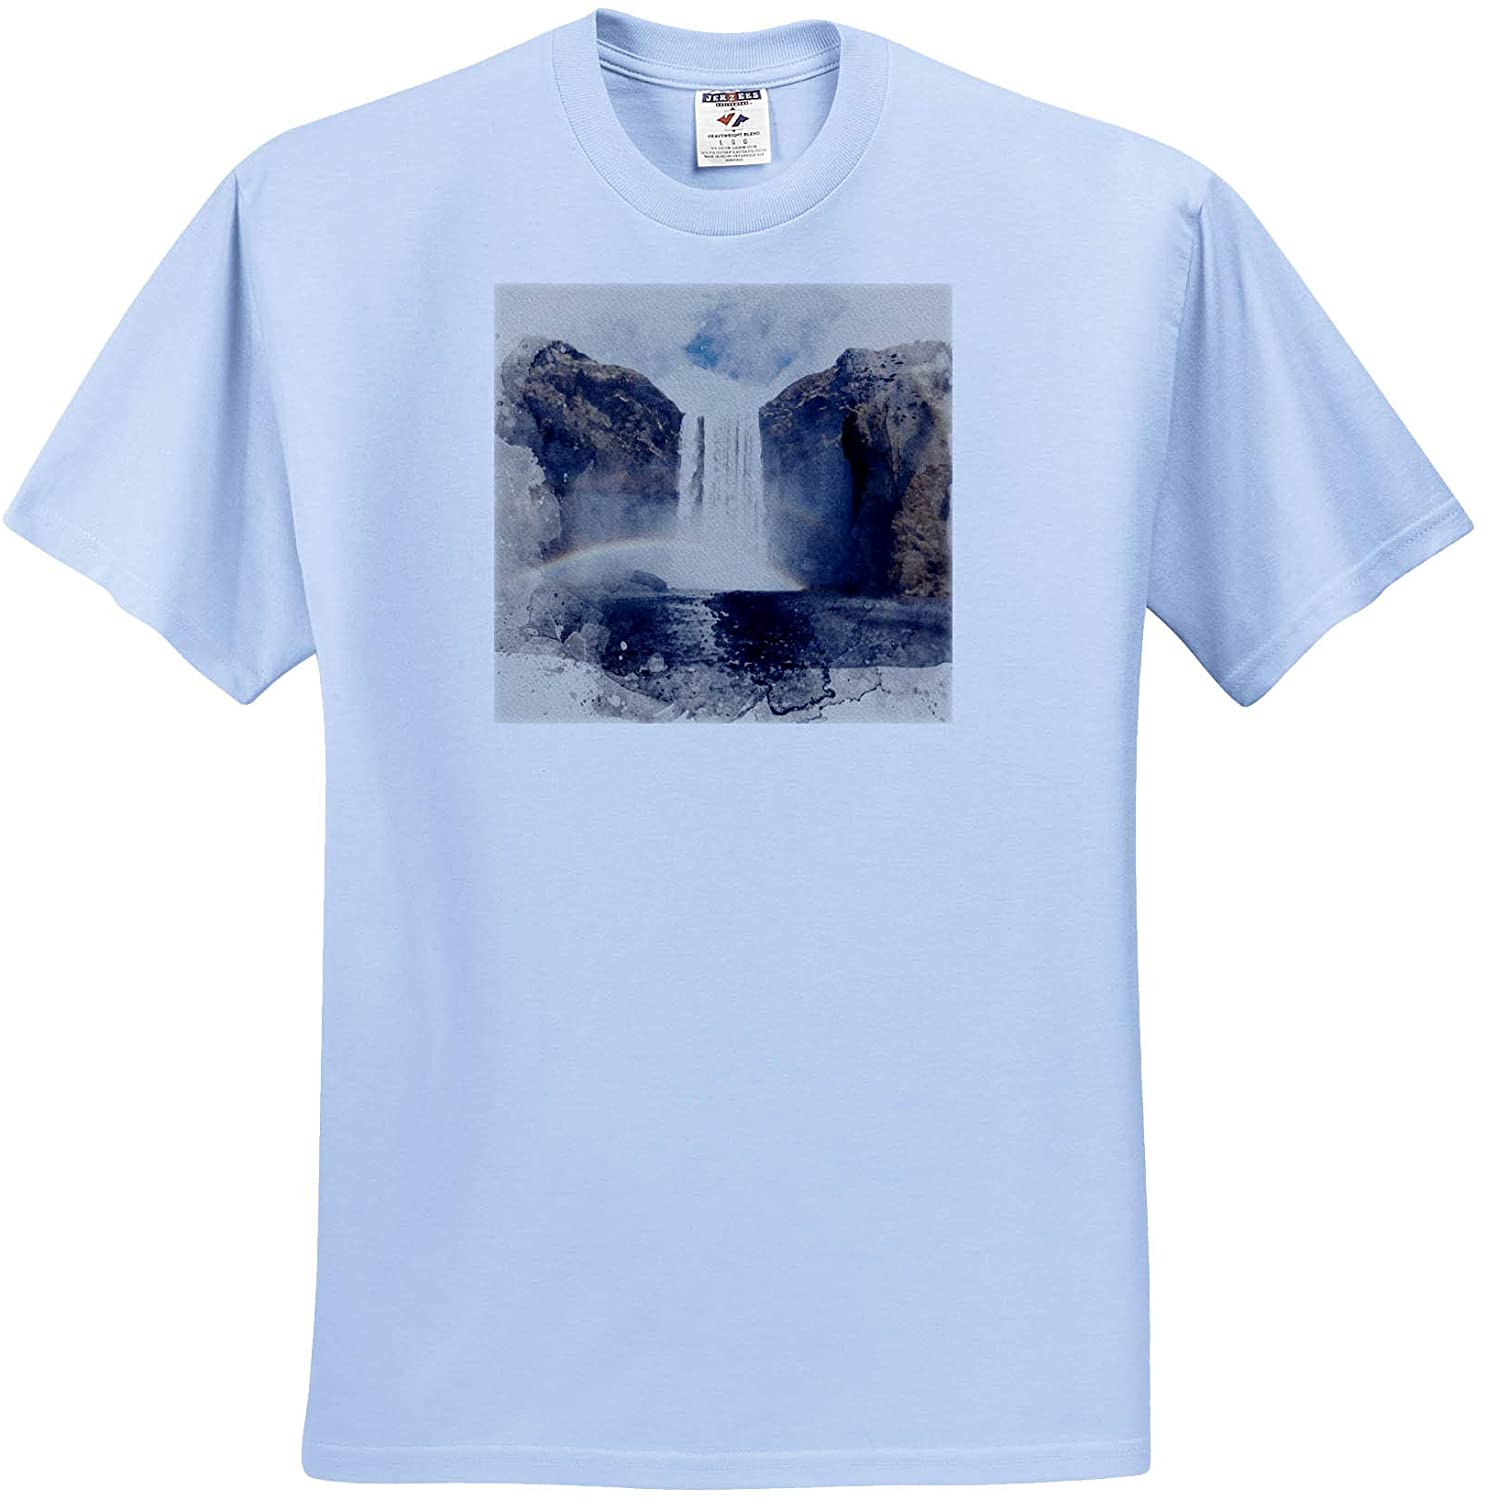 3dRose Anne Marie Baugh - Impressionist Mixed Media Art - Image of Watercolor Waterfall Through A Rainbow Art - Youth Light-Blue-T-Shirt Small(6-8) (ts_328964_60)